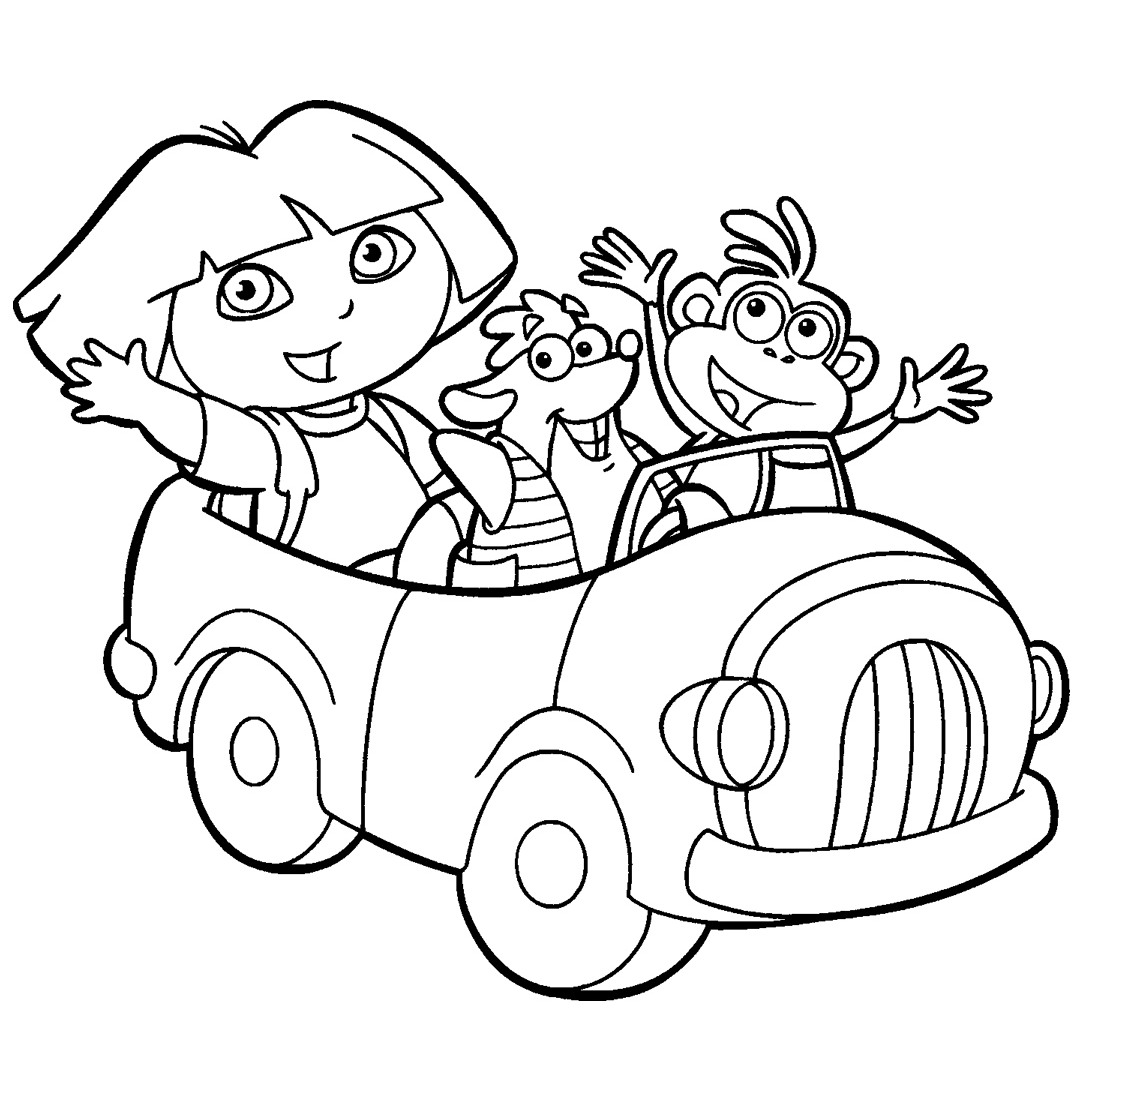 dora pictures to color and print dora the explorer cartoons page 4 printable coloring to pictures color dora and print